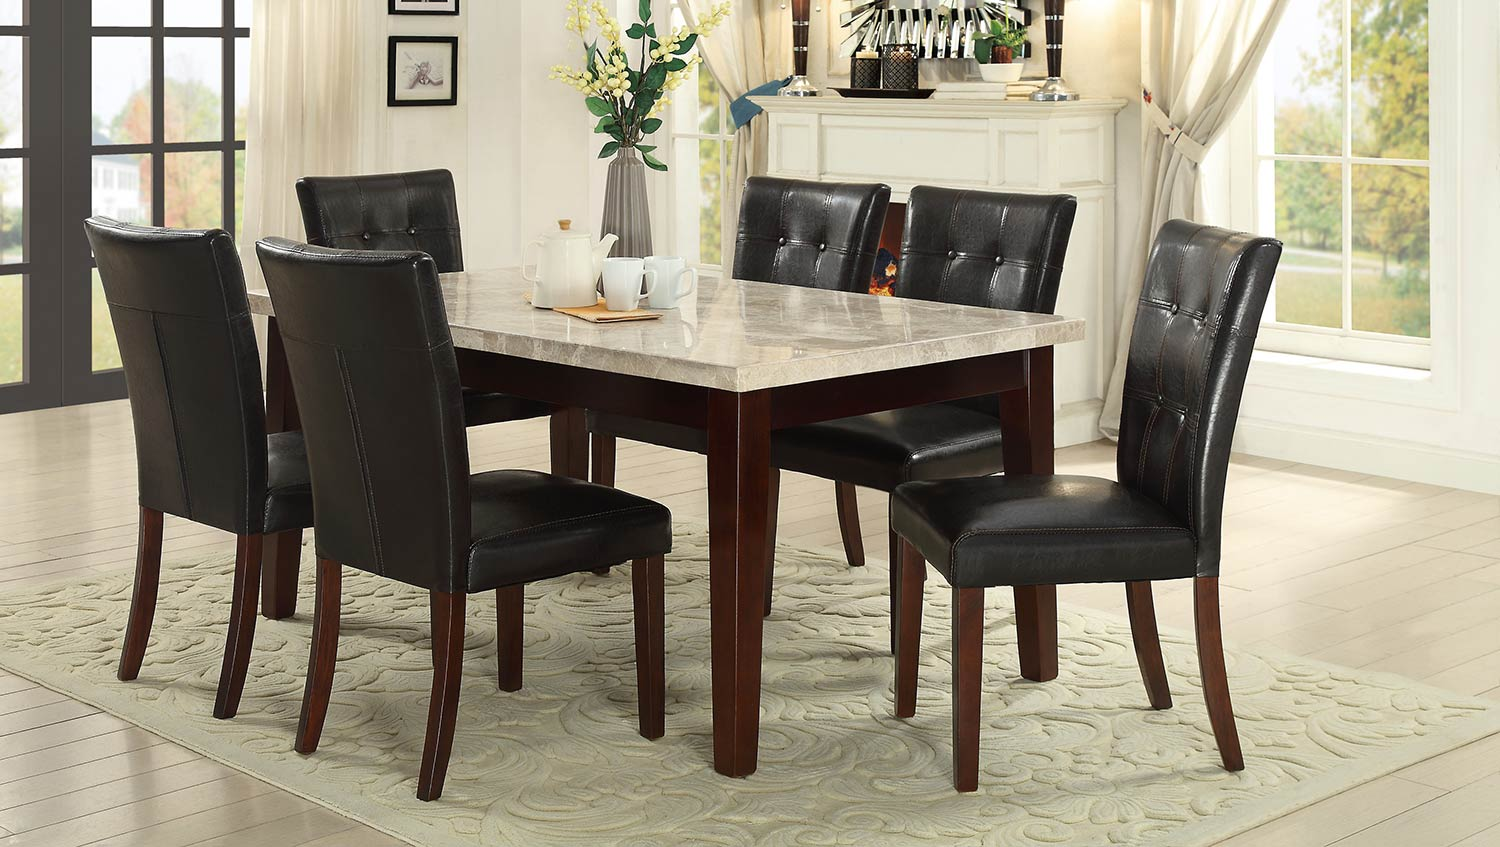 Homelegance Decatur Dining Set - Espresso - Dark Brown Bi-Cast Vinyl